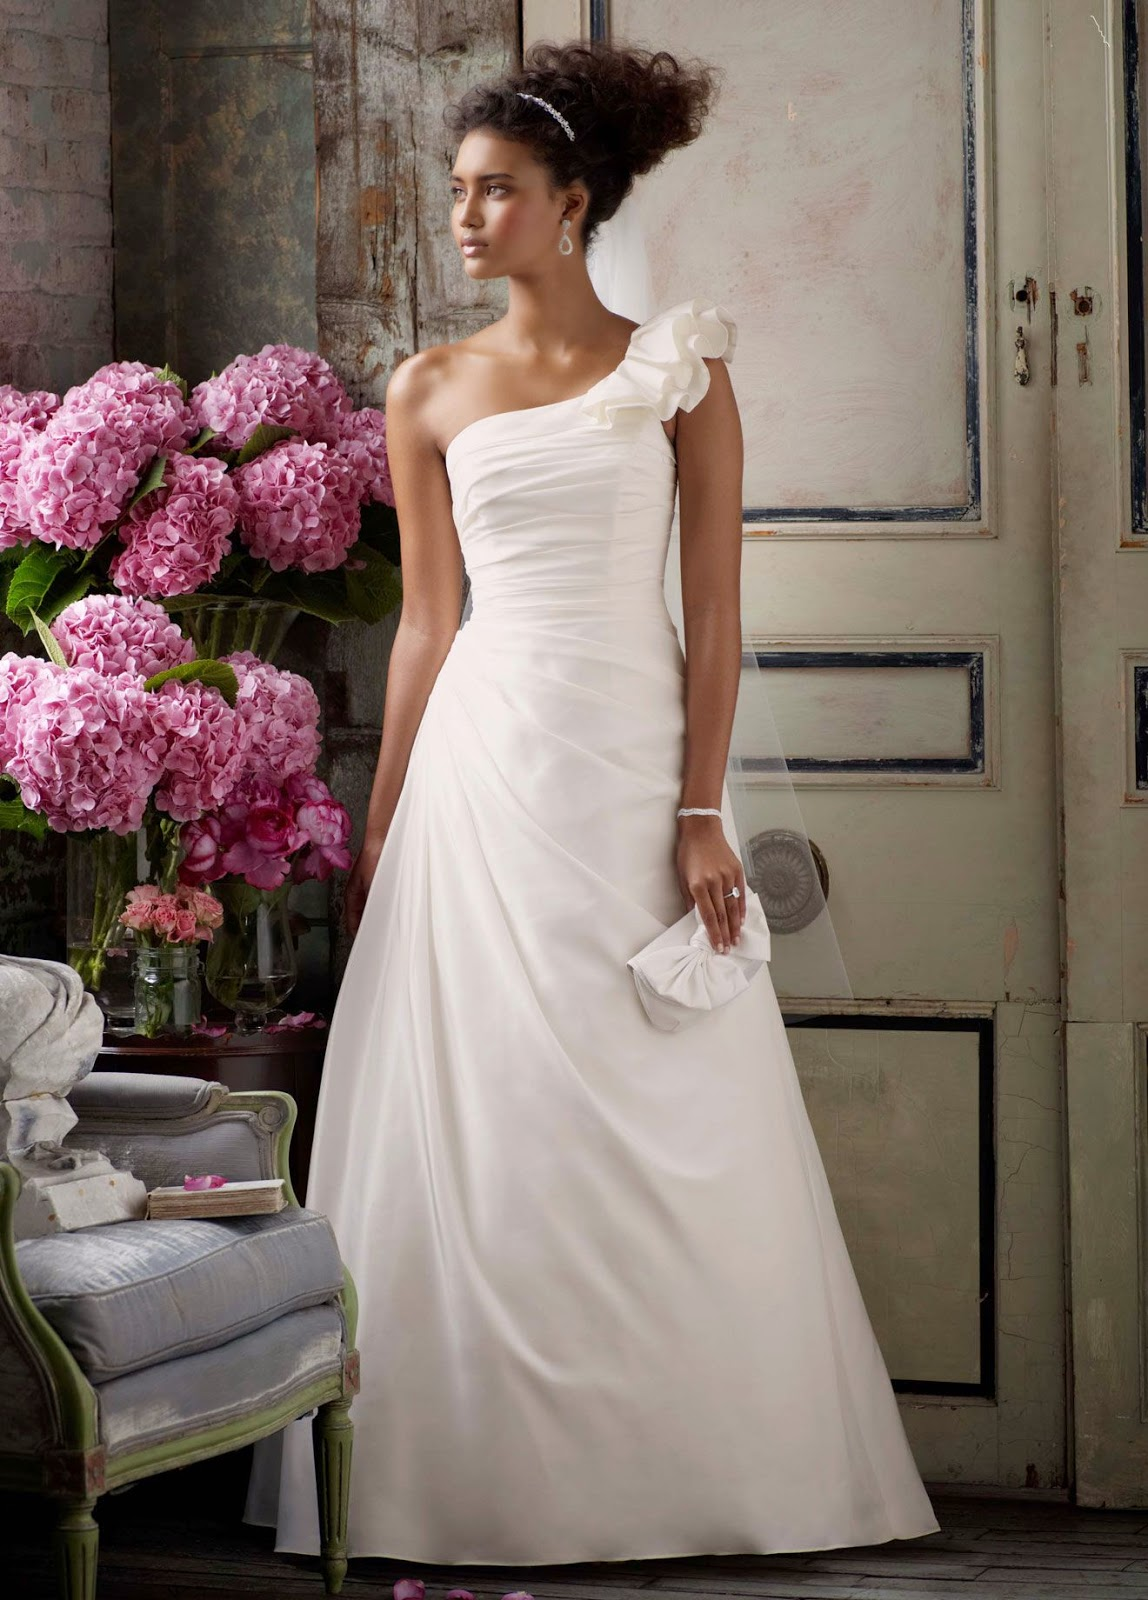 2016 Wedding Dresses And Trends. Casual Wedding Dresses Pinterest. Mature Ivory Wedding Dresses. Disney Wedding Dresses Mulan. Vintage Style Wedding Dresses Perth Wa. Ivory Wedding Dress And Black Tux. Red Wedding Dresses Cheap. Informal A-line Wedding Dresses. Indian Wedding Dresses Toronto